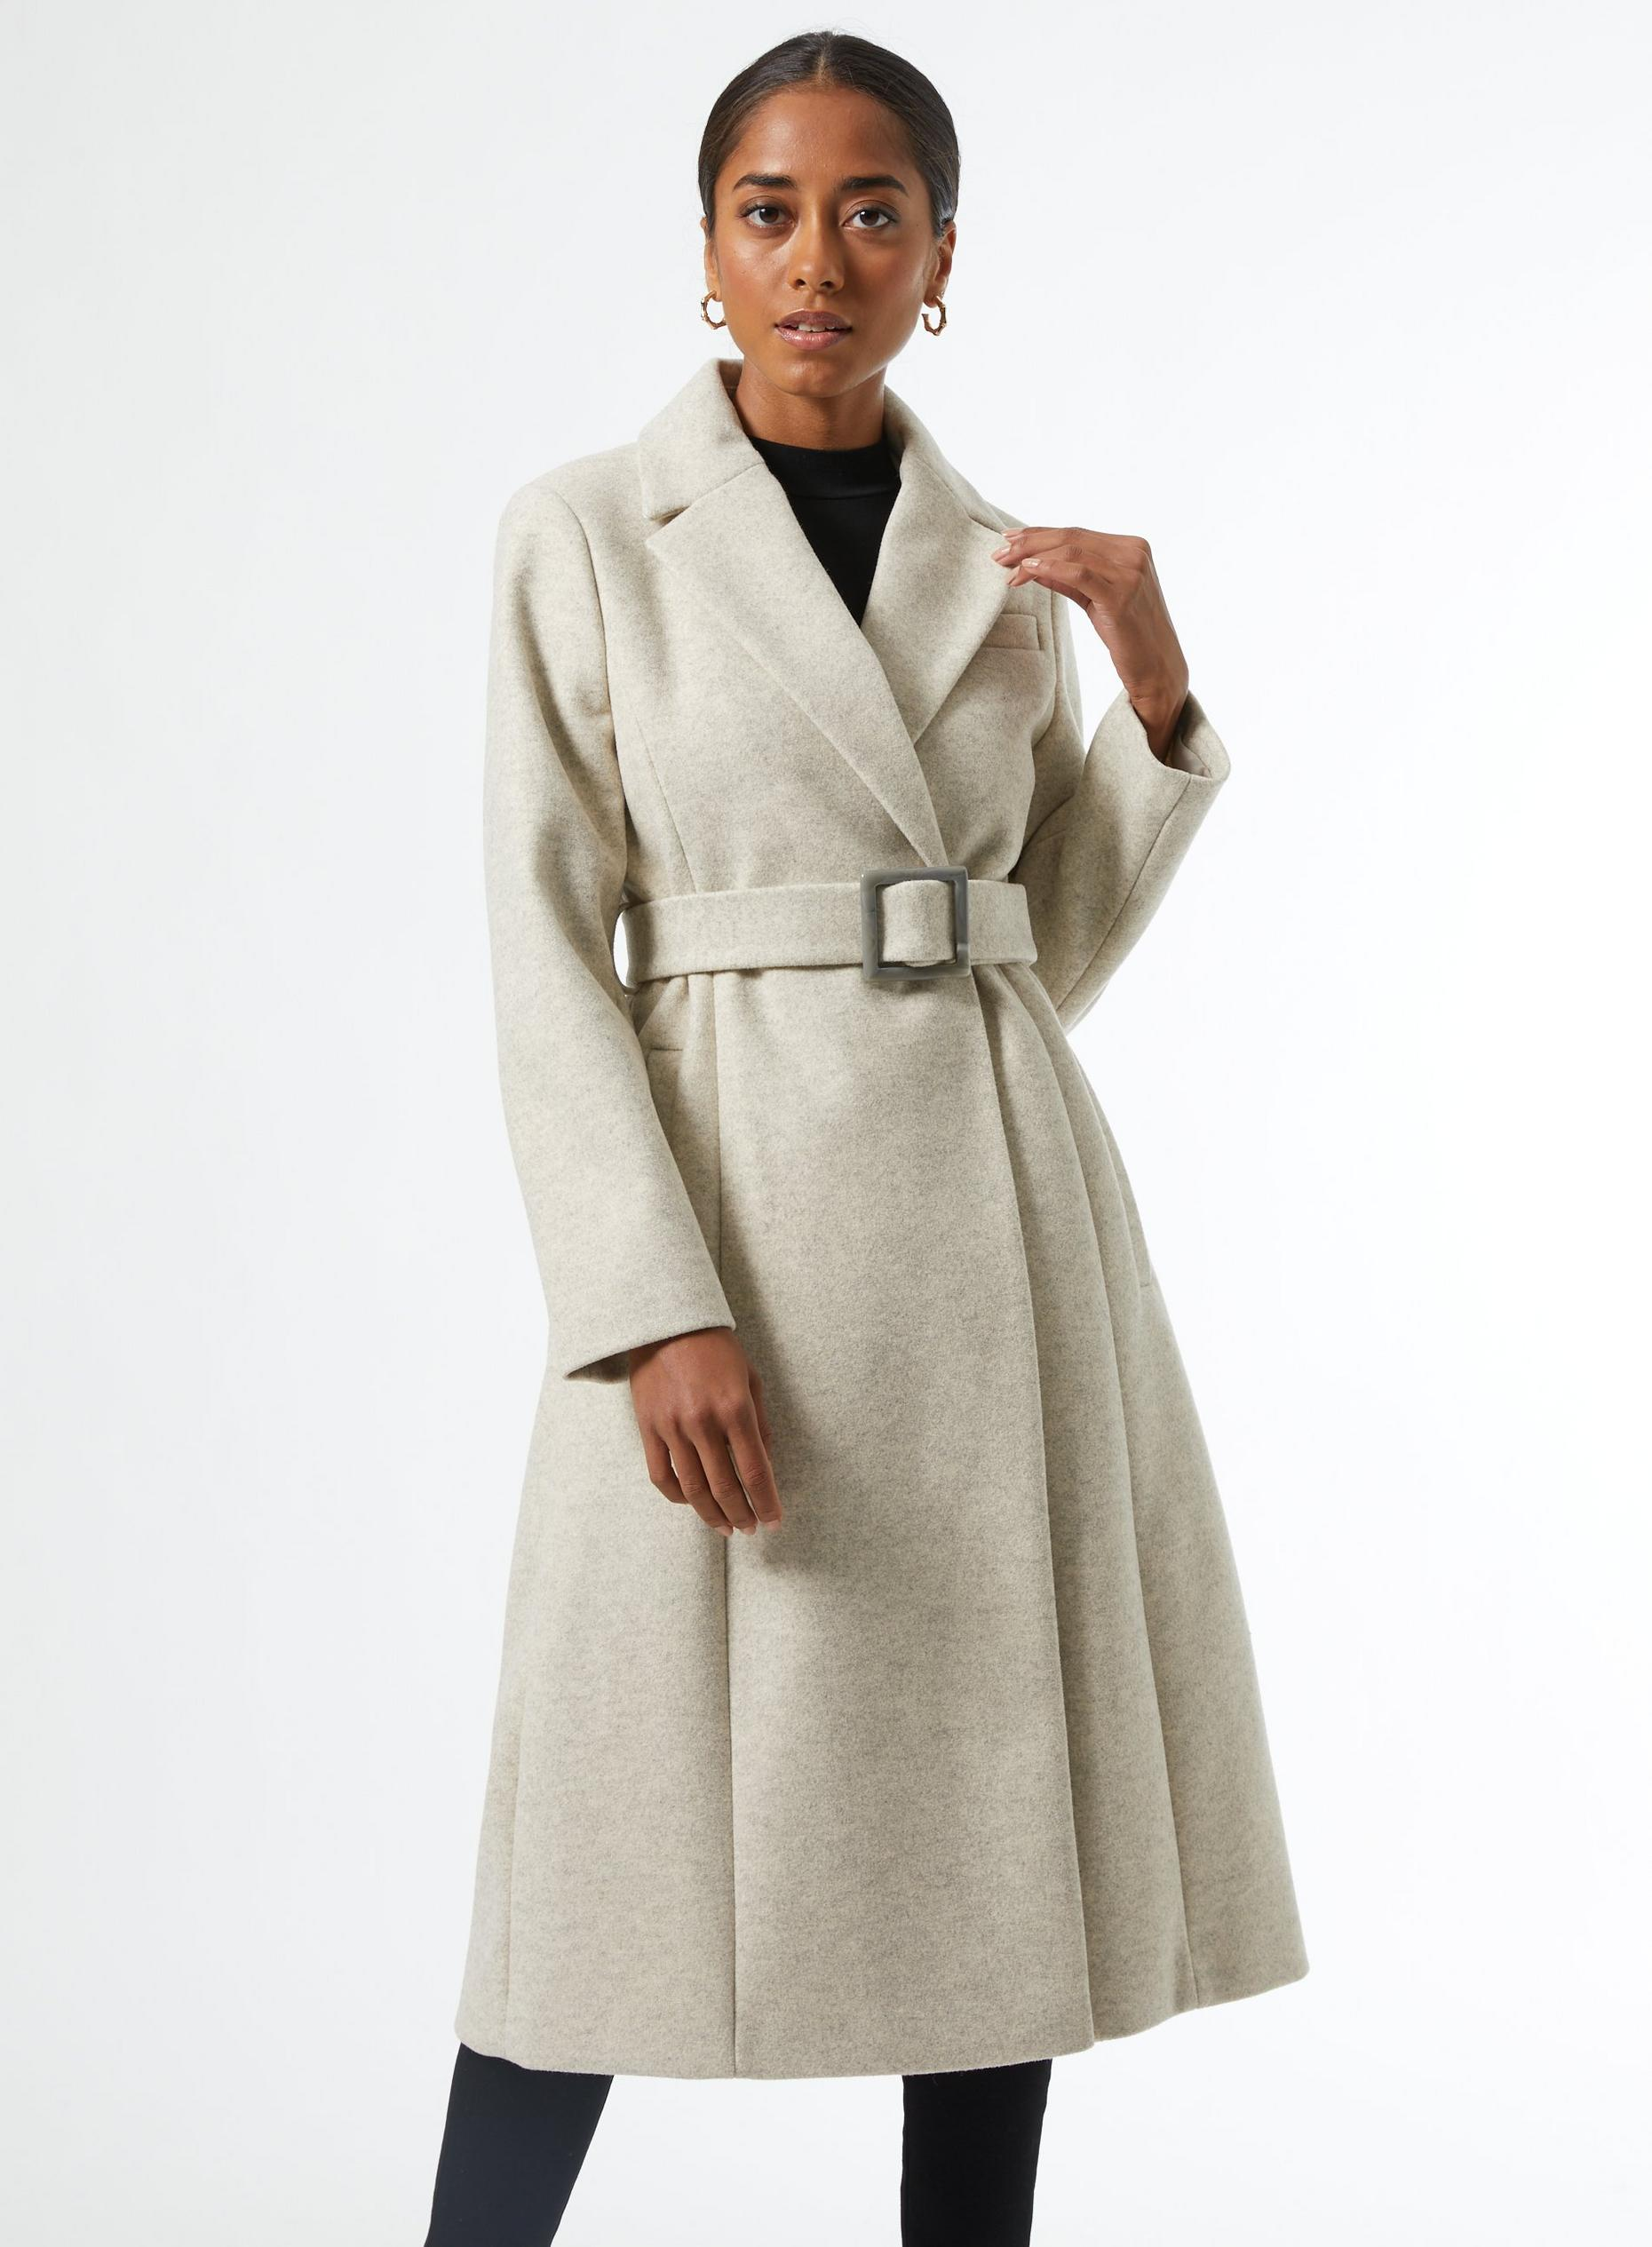 DP Petite Ivory Belted Wrap Coat